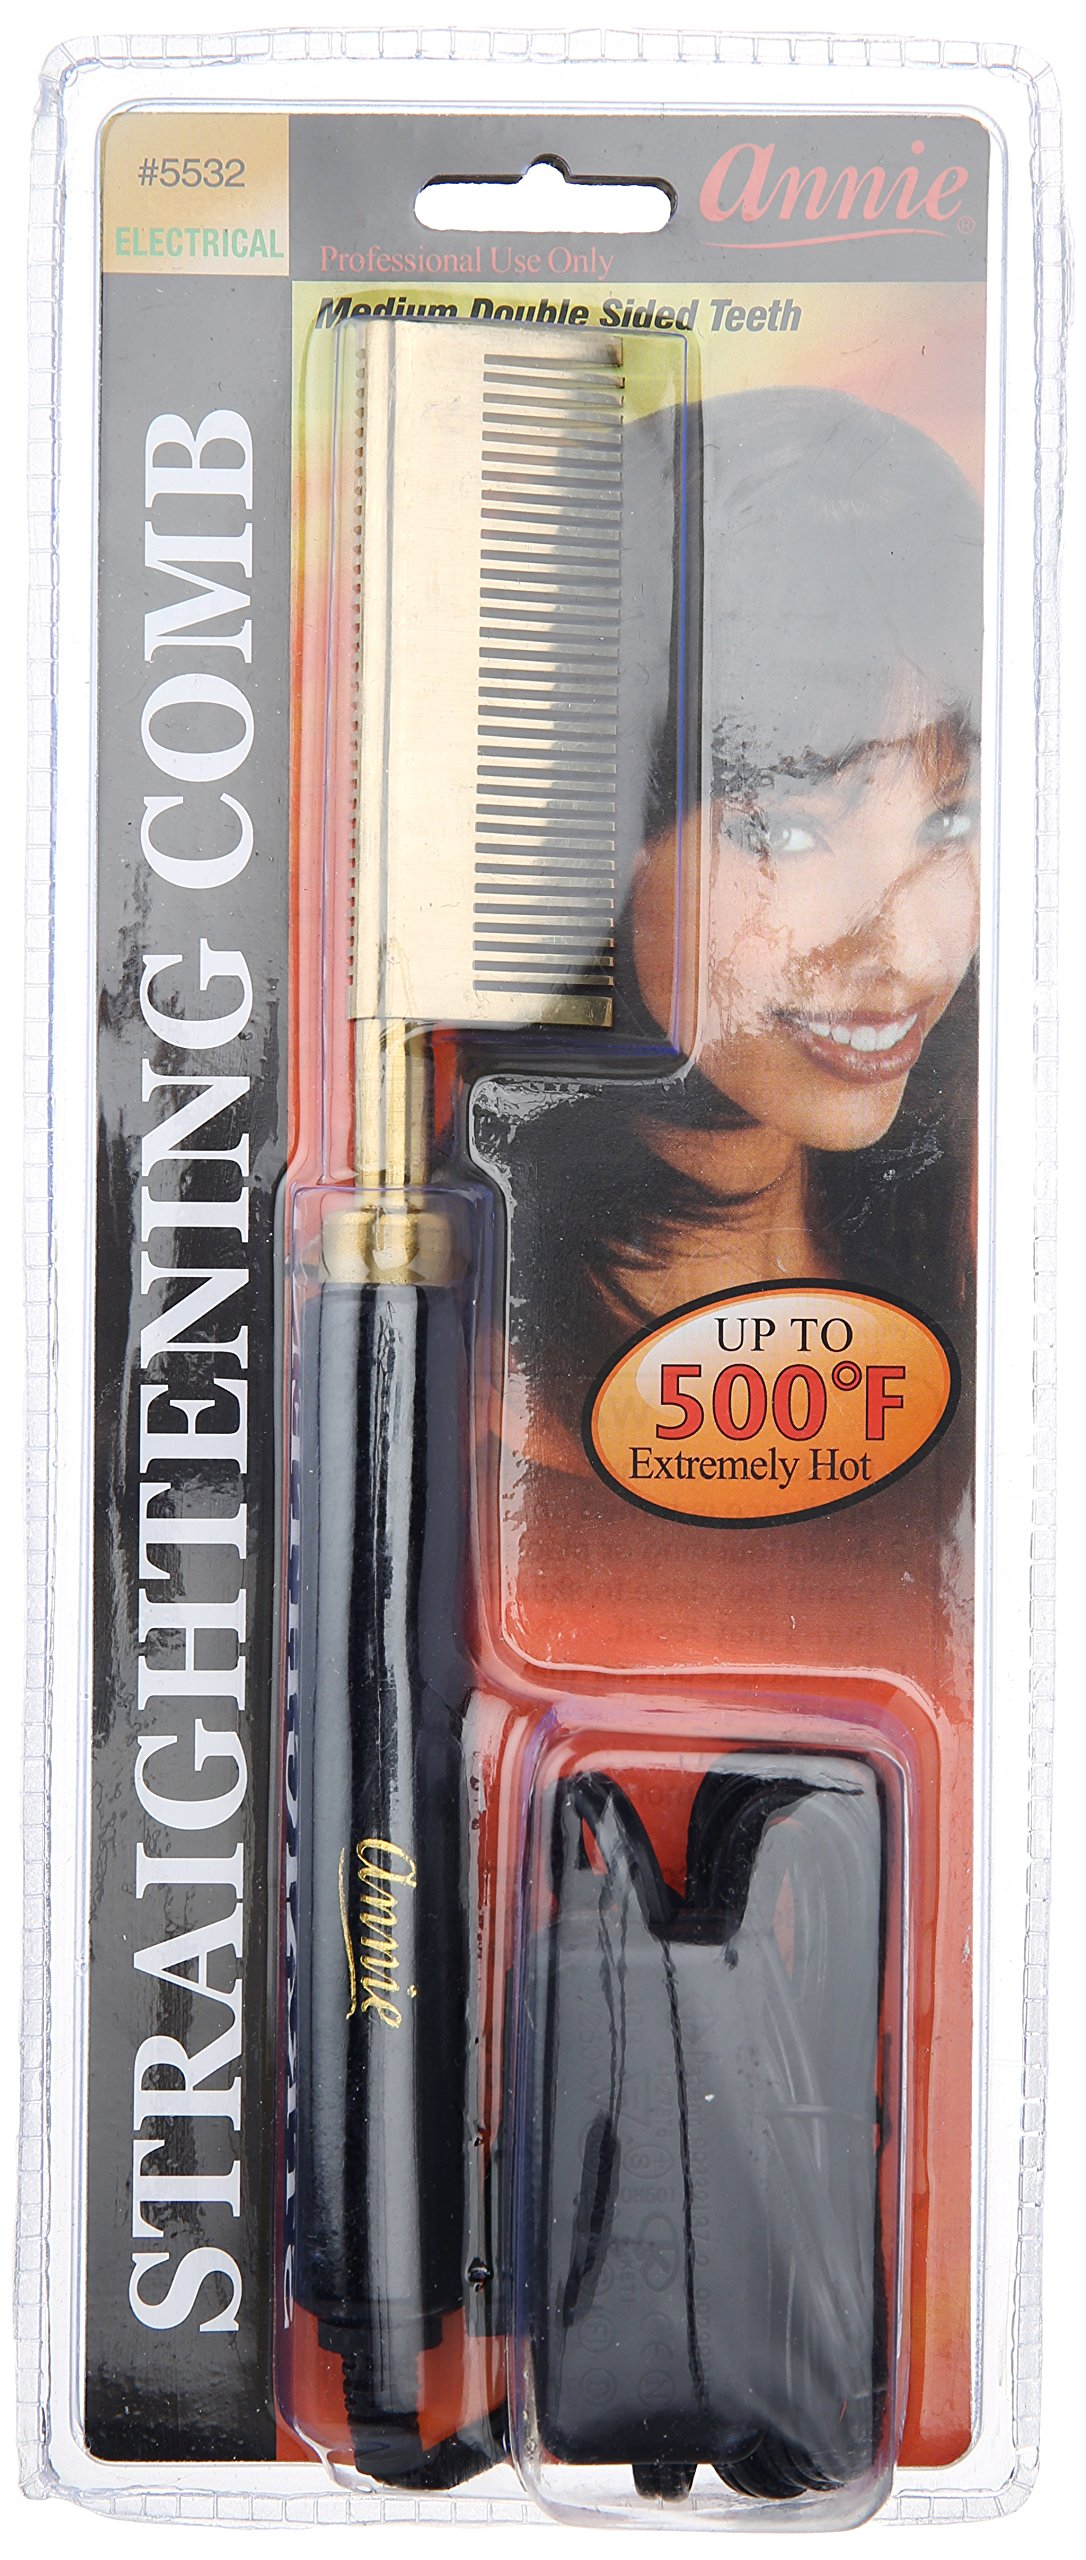 Annie Electrical Straightening Comb, Double Sided Medium Teeth